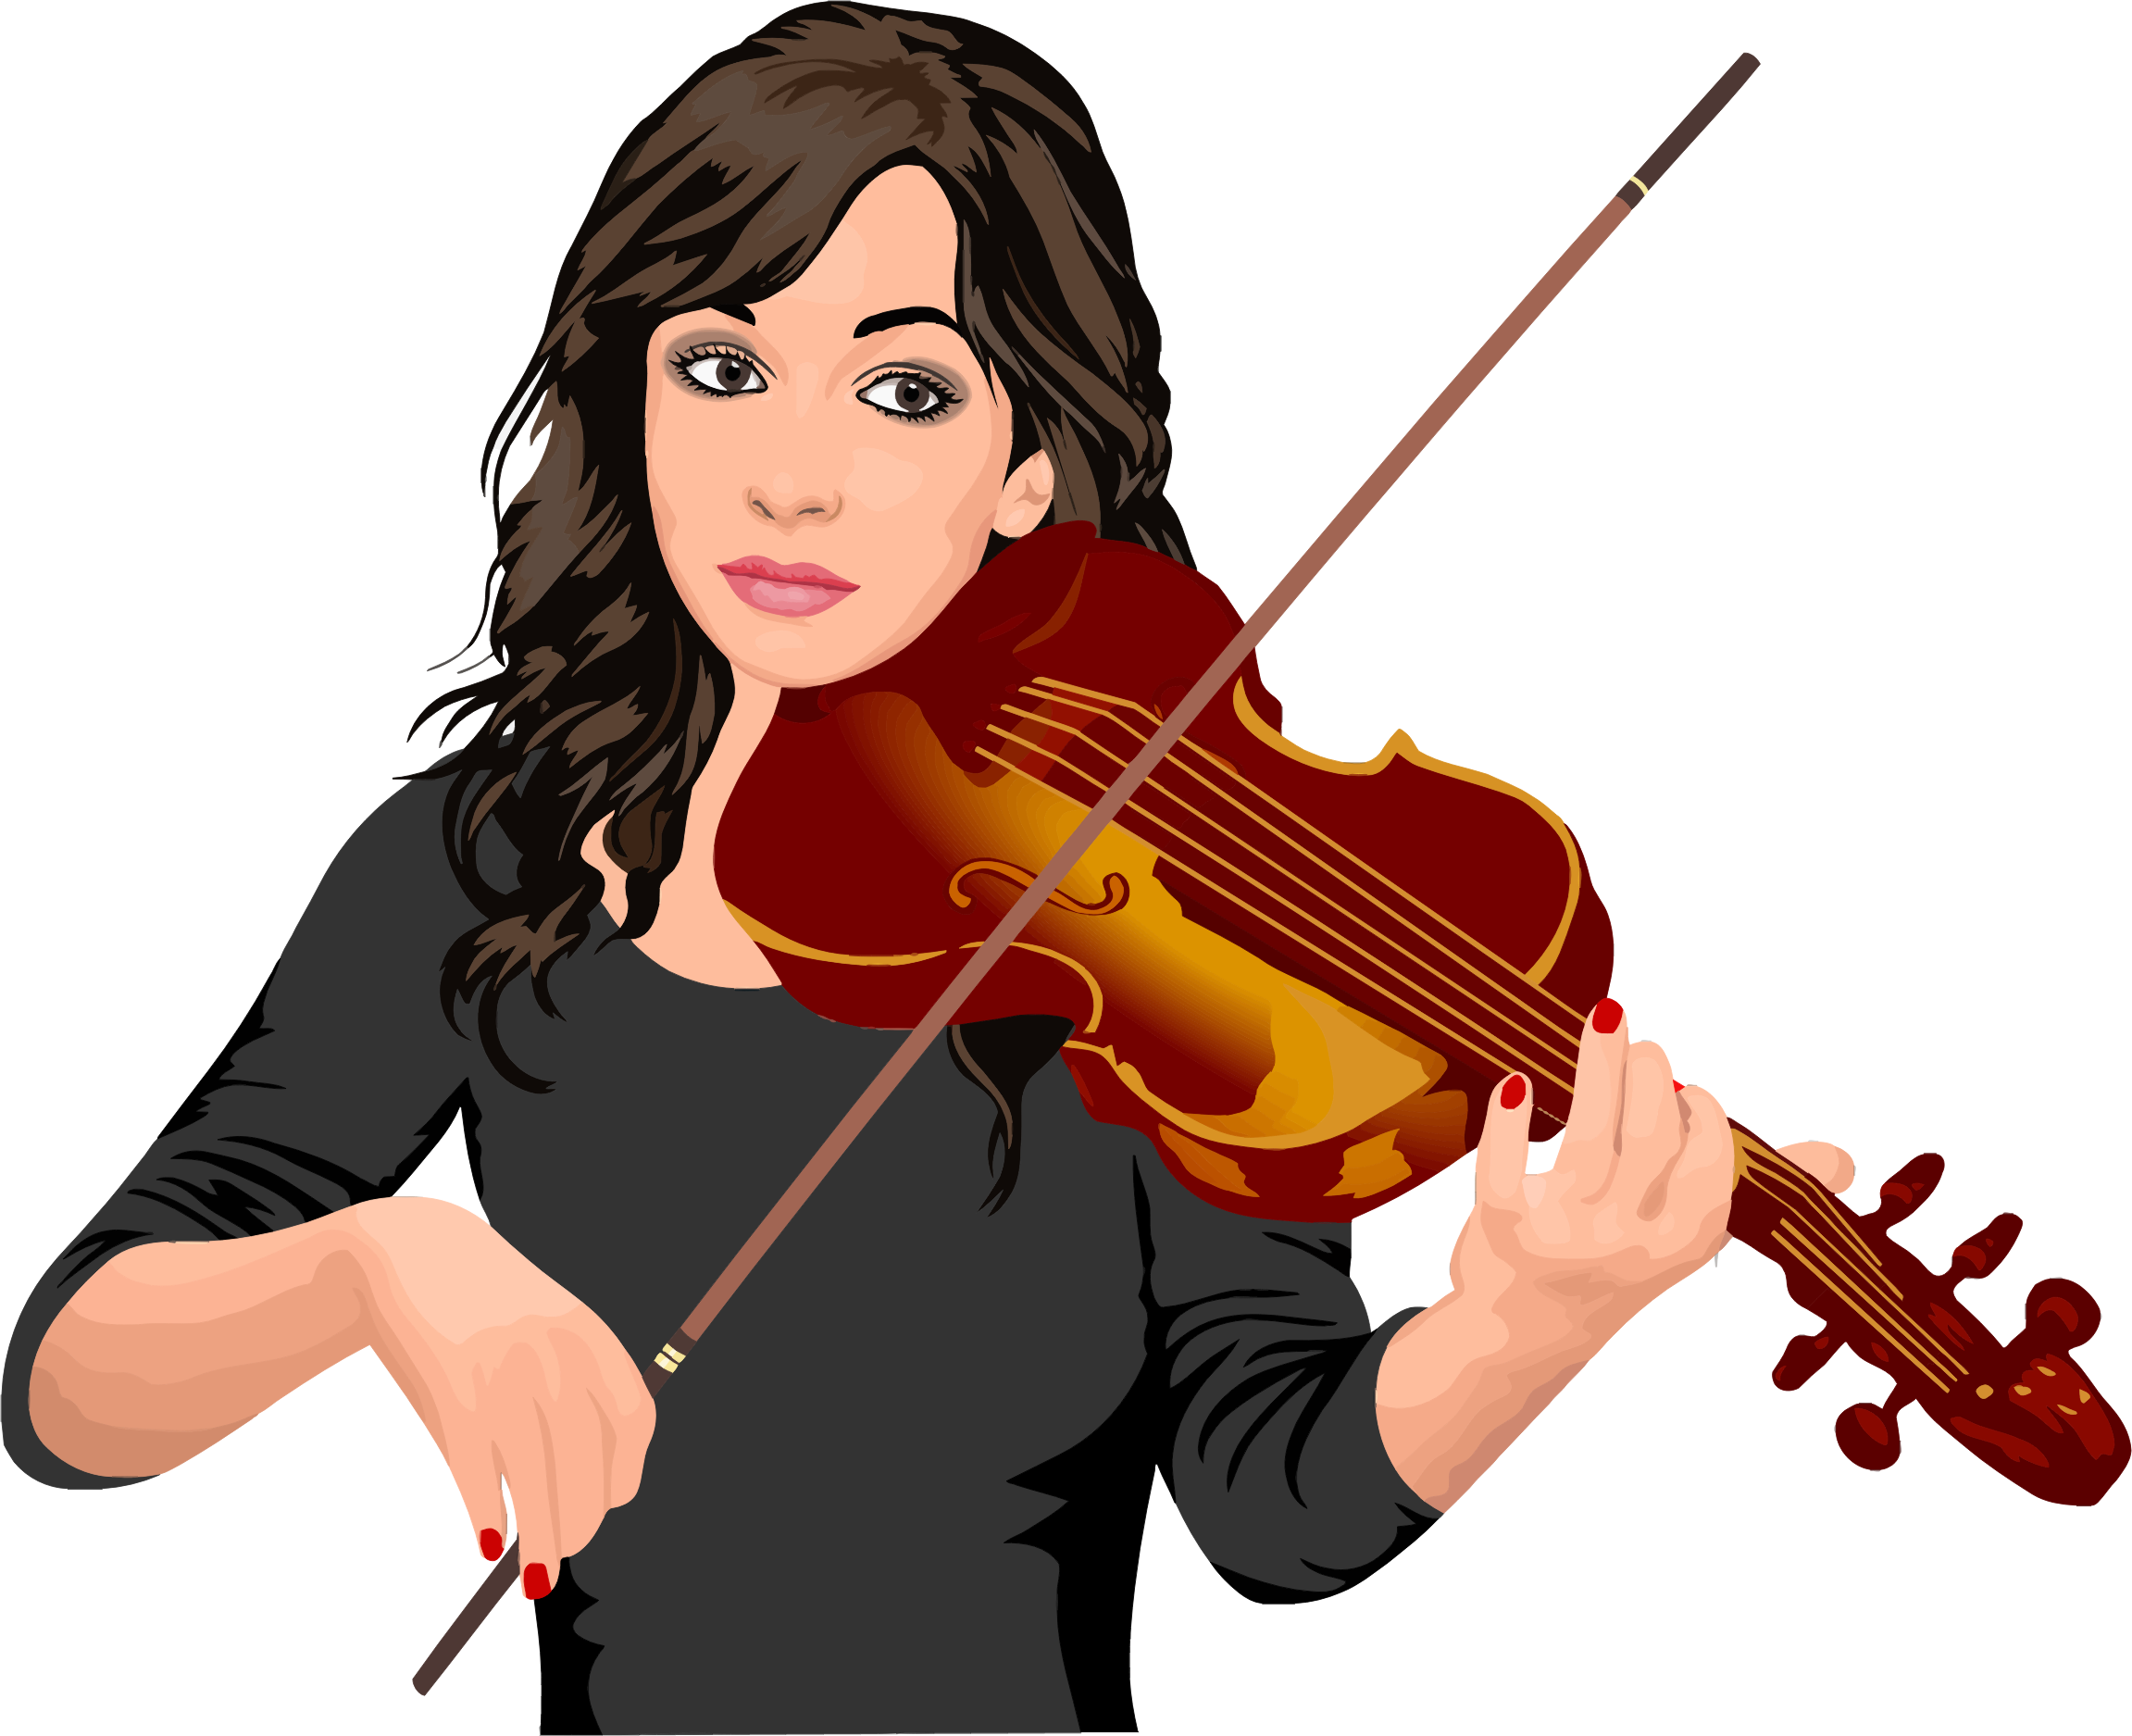 Female Violinist Portrait by GDJ